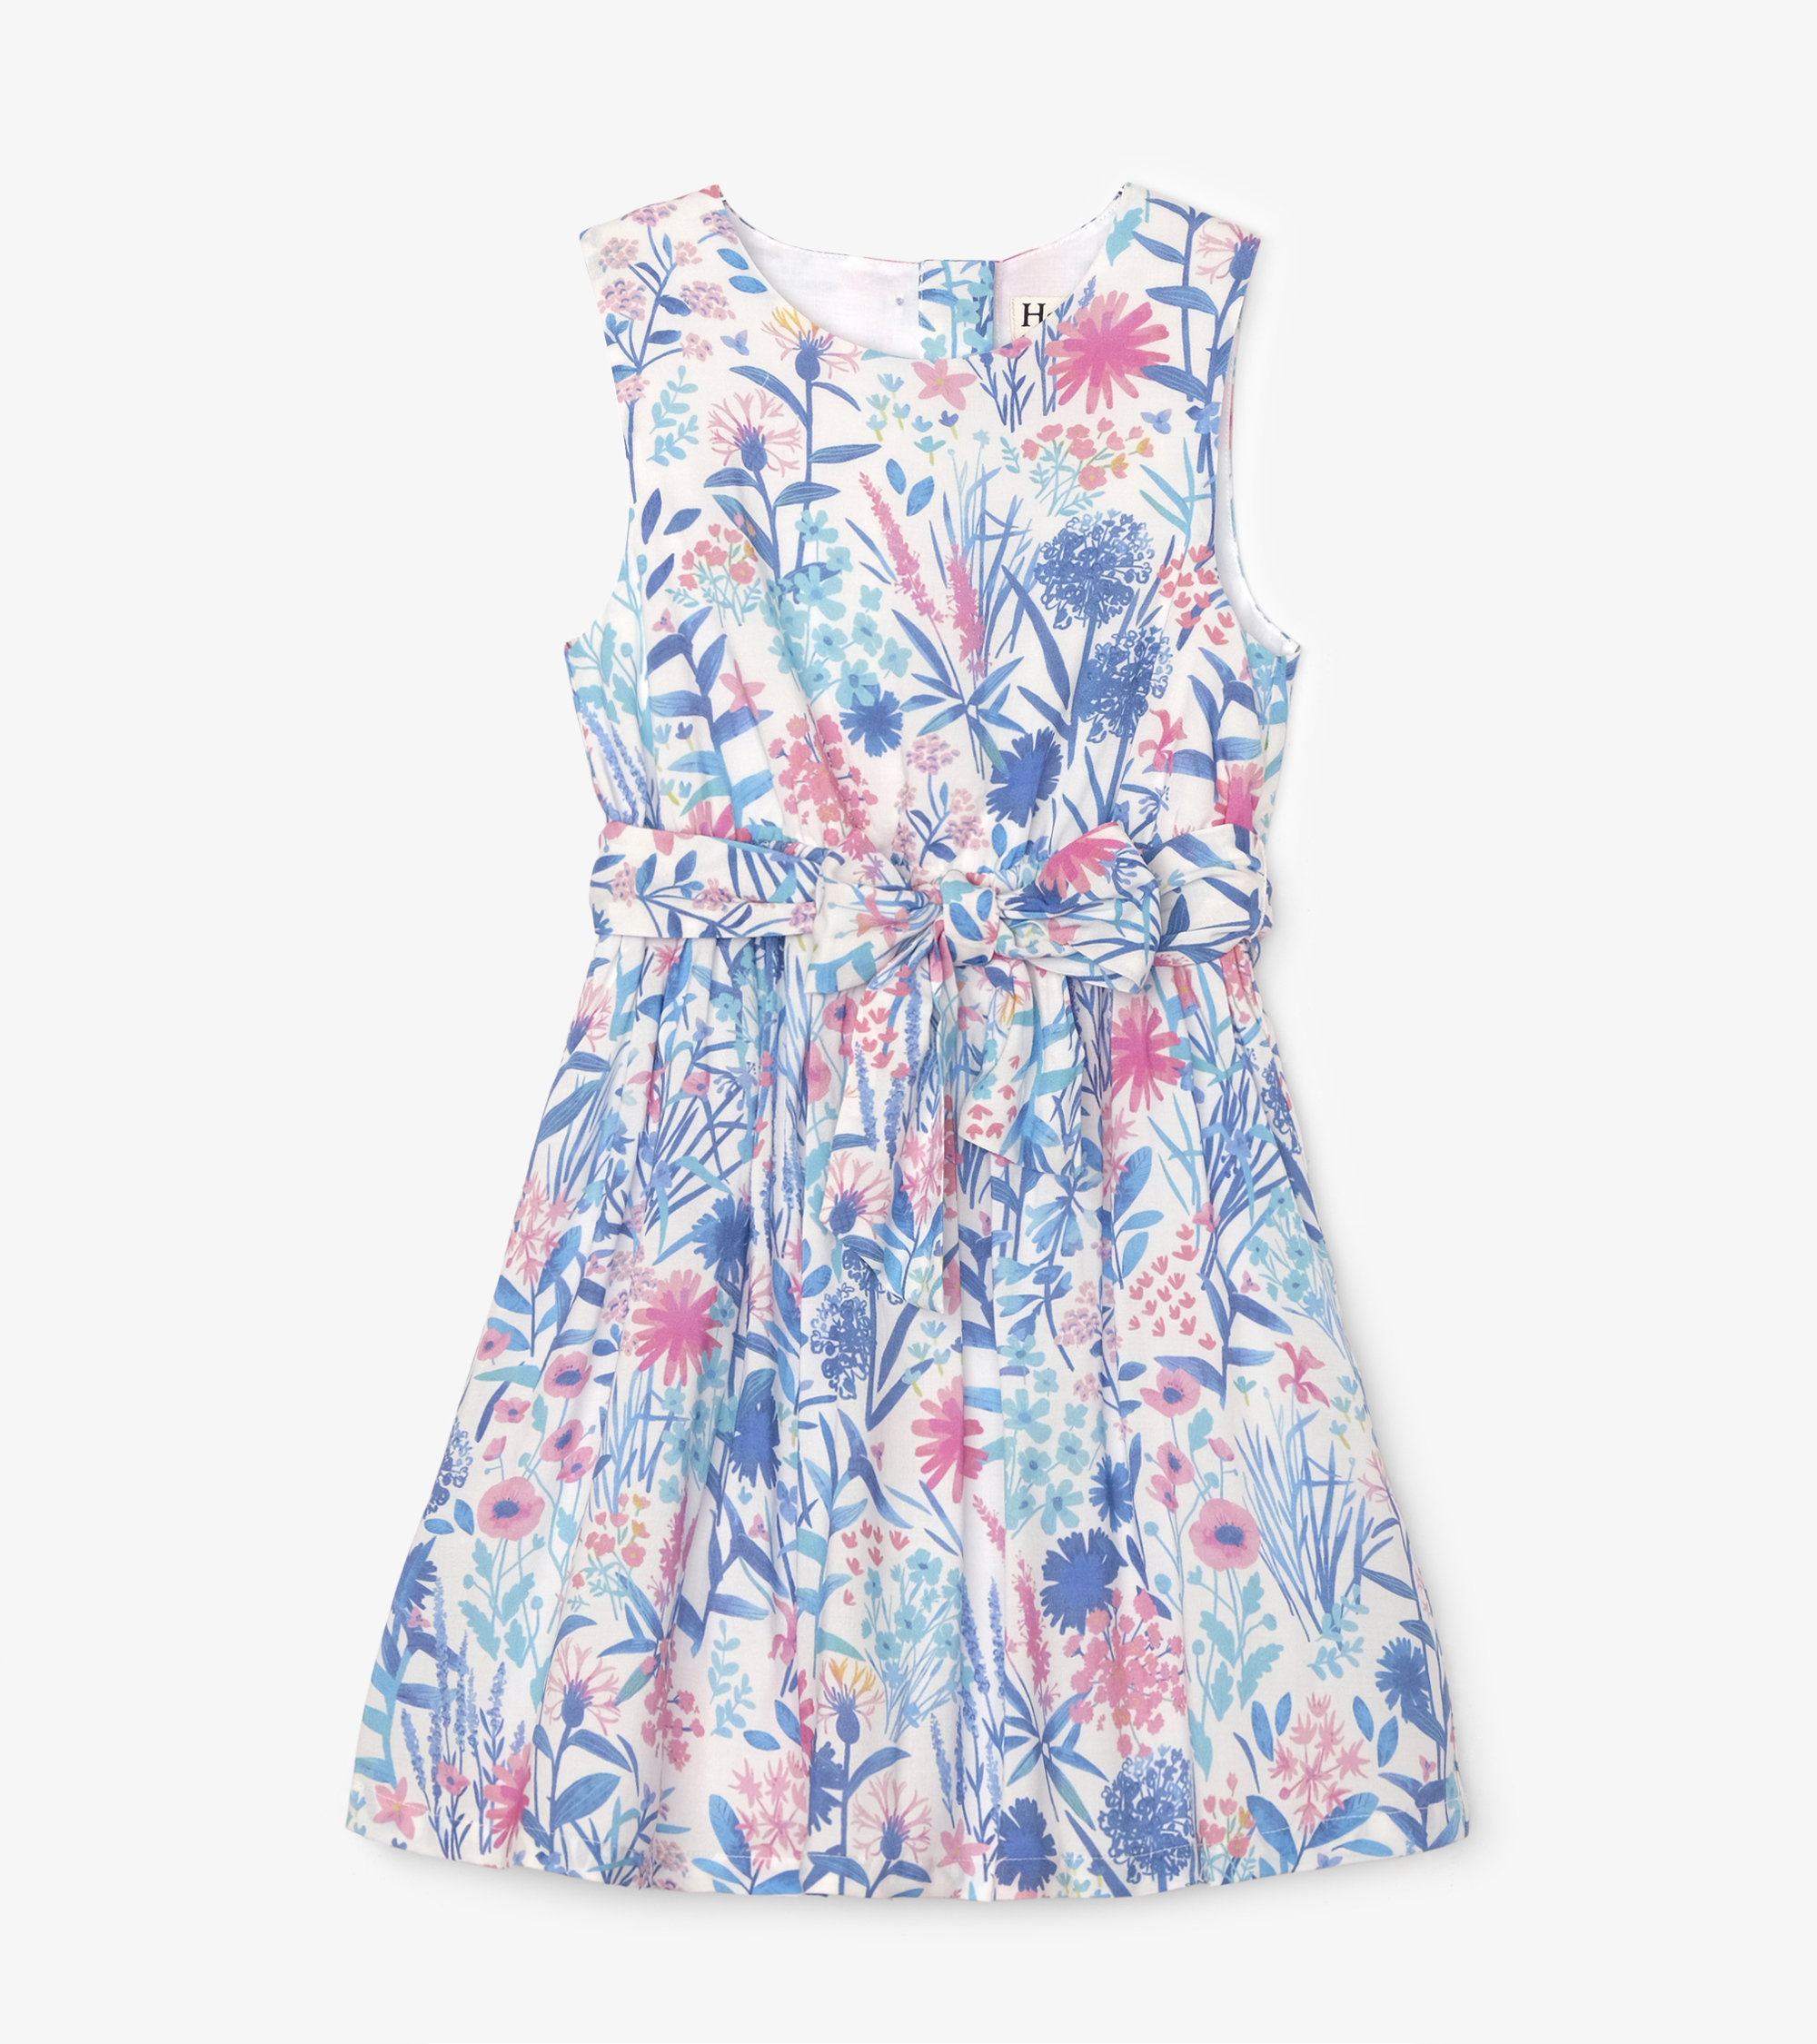 NOW £23 Hatley Spring Wildflowers Dress (Was £39)